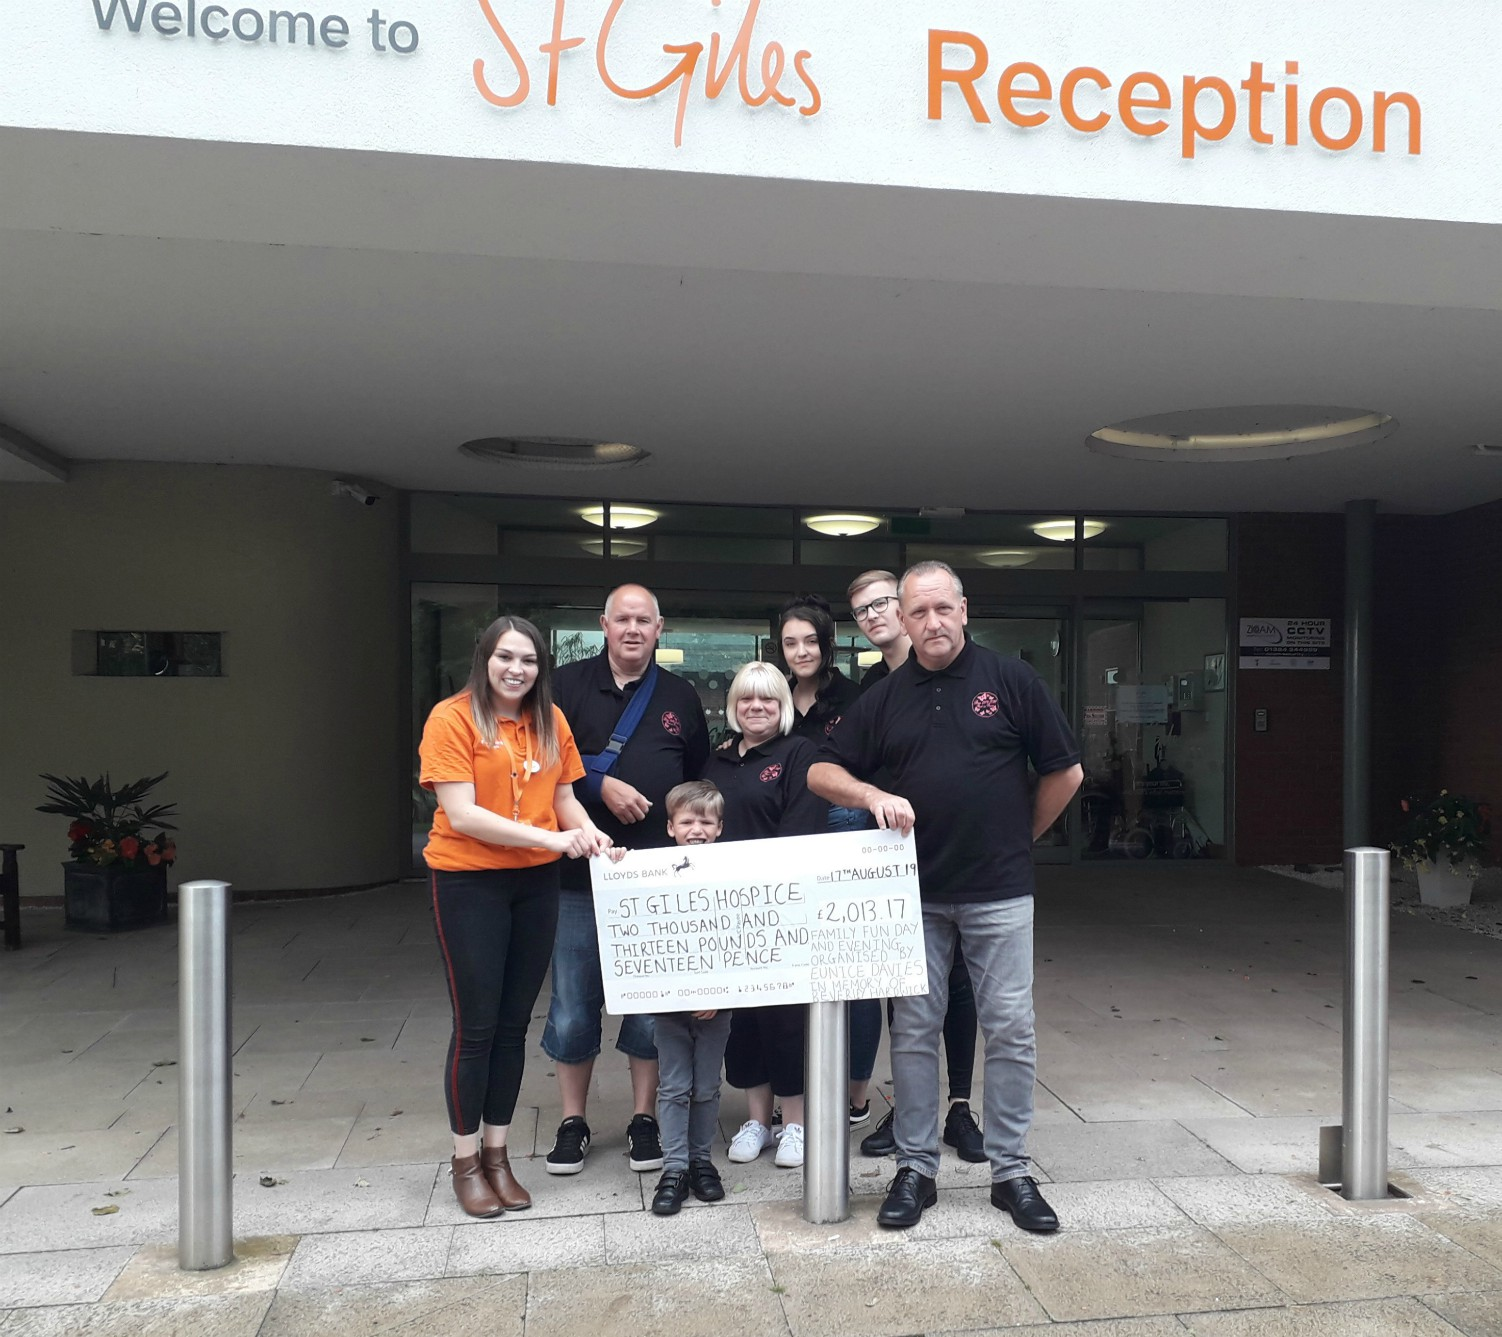 Burntwood family fun day raises £2,000 for St Giles Hospice